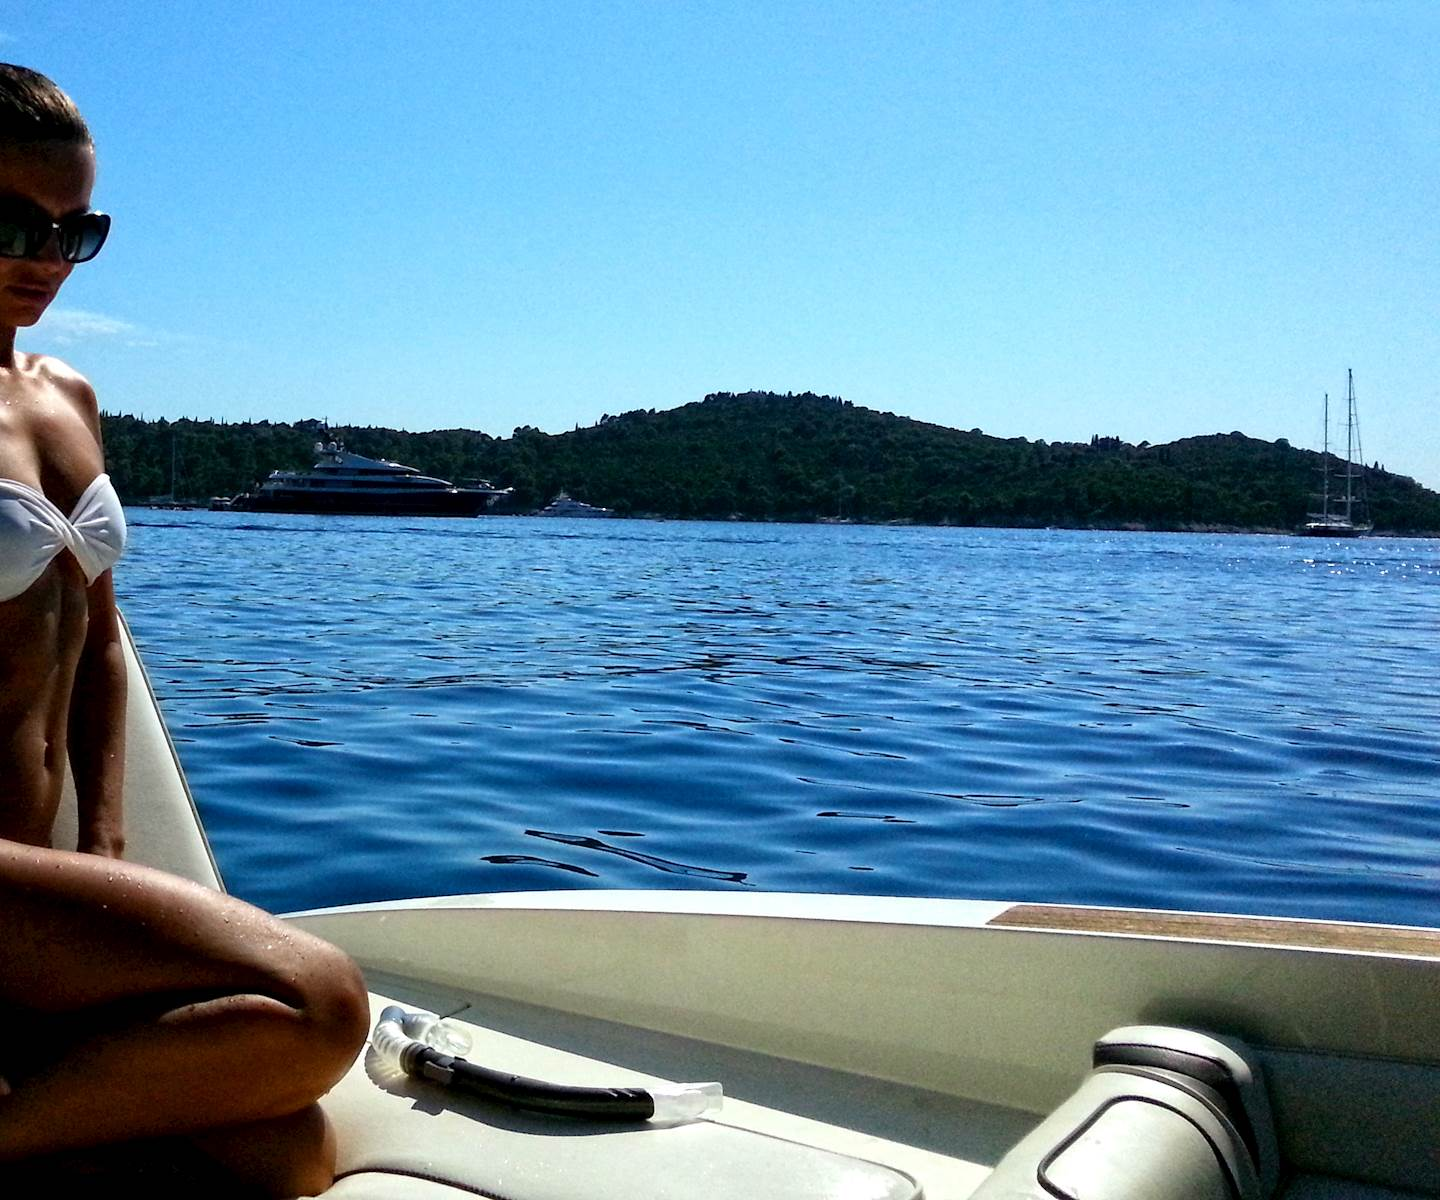 -images-excursions-elaphite-islands-speed-boat-excursion--speedboat-girl-on-sea-ray-240-sunsport-charter-boat-dubrovnik.jpg